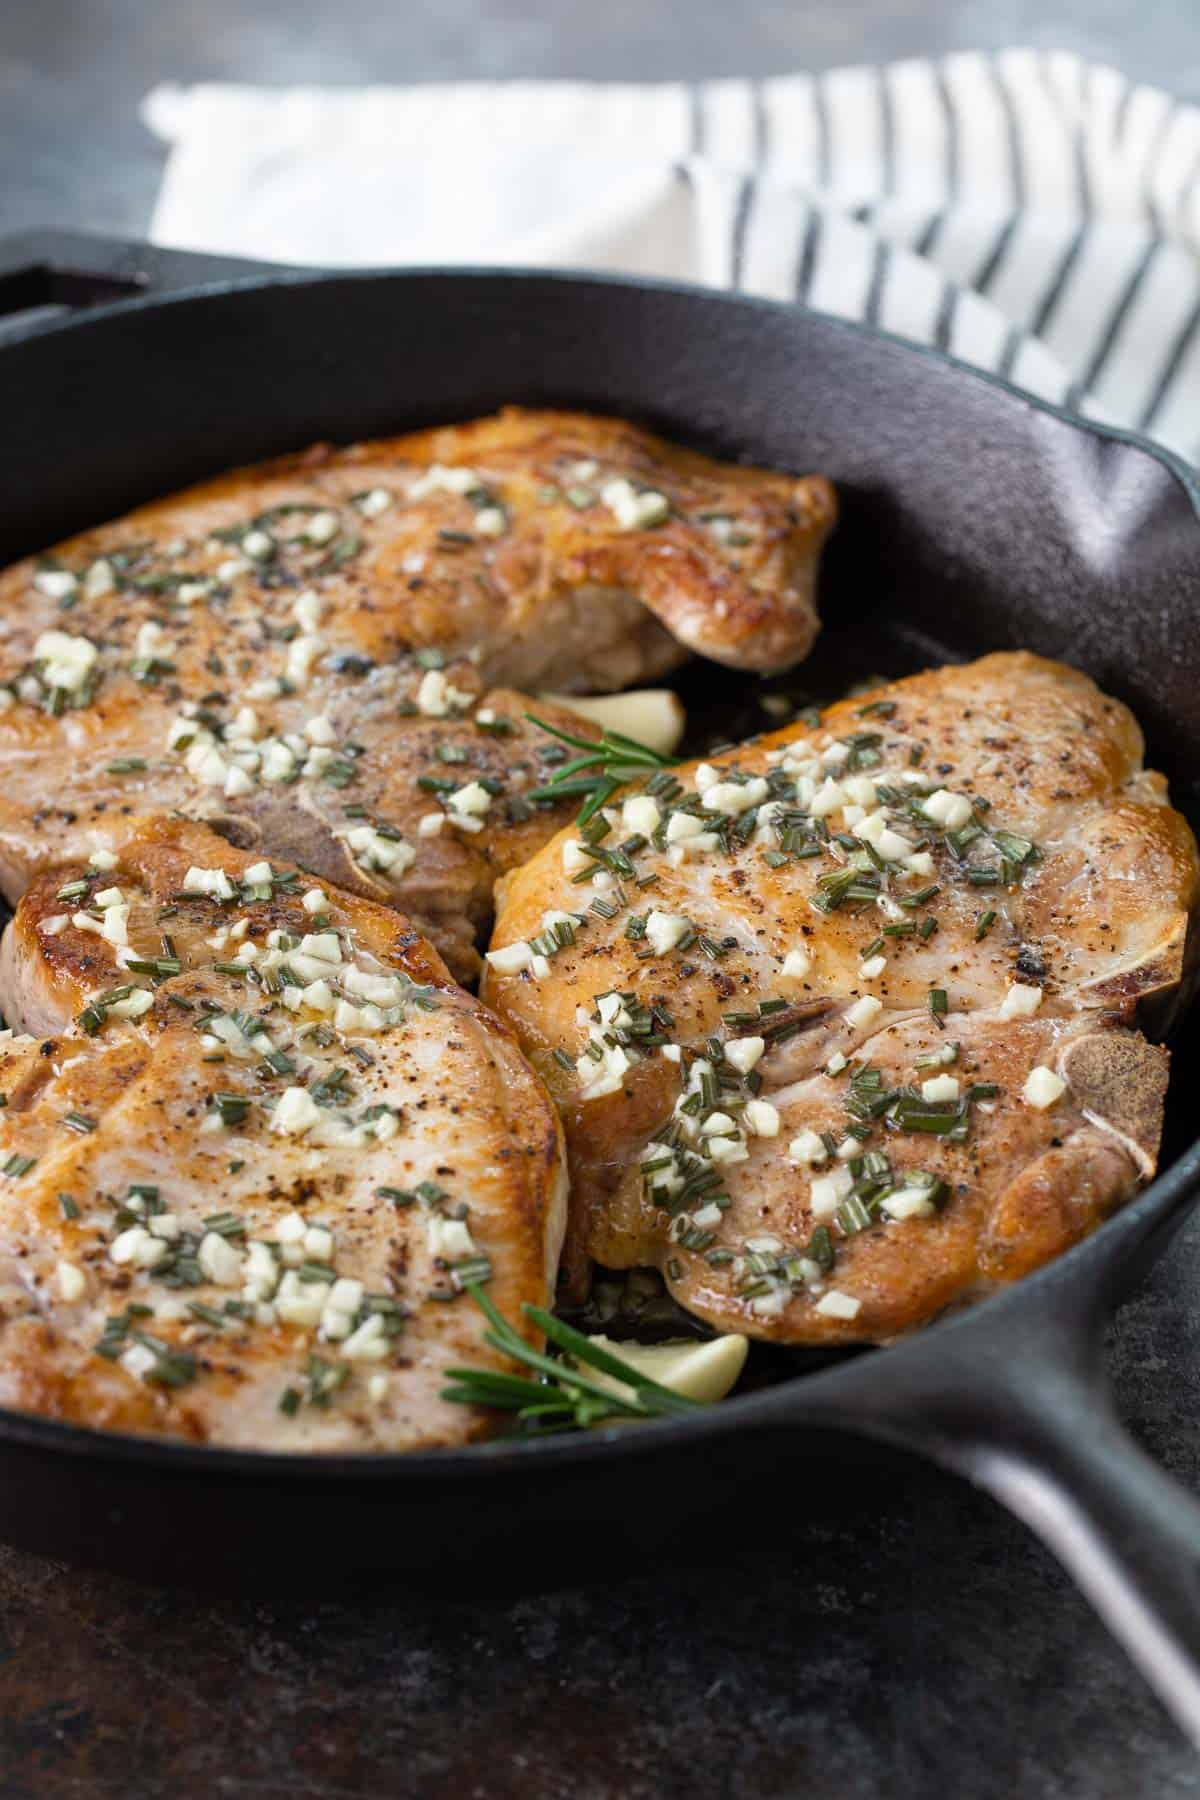 A closeup view of baked pork chops with rosemary and garlic in a skillet.